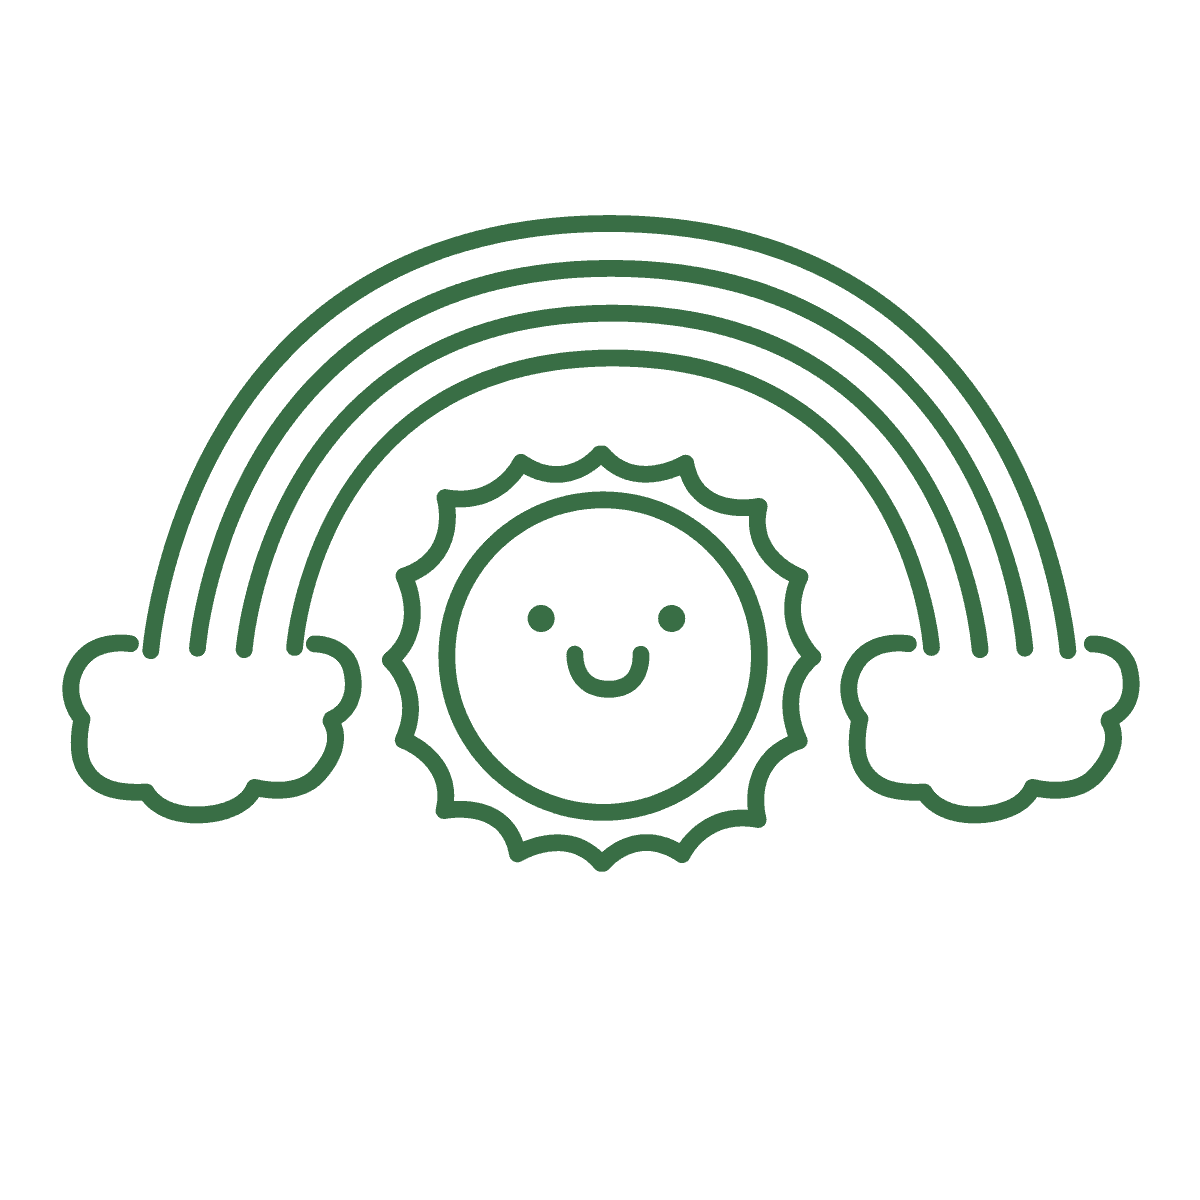 Green rainbow with smiley face inside icon